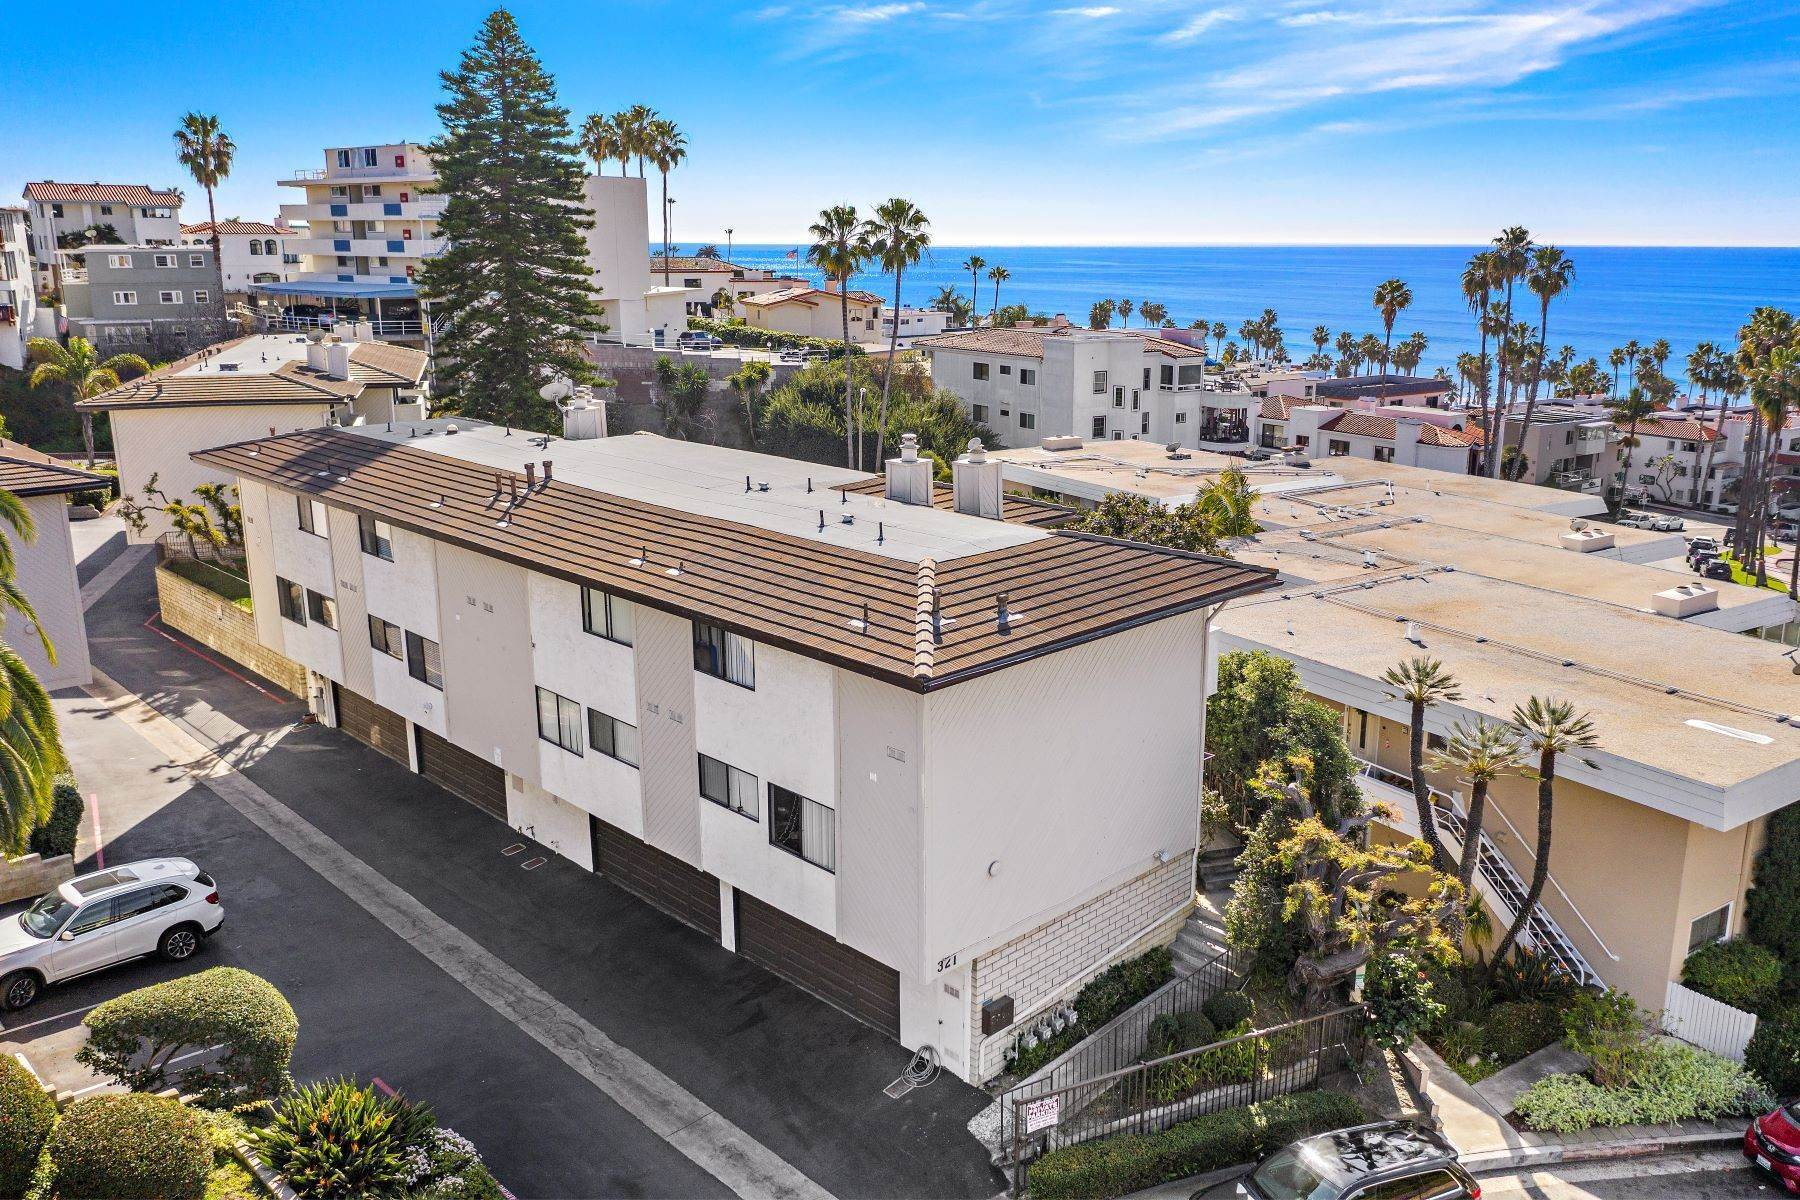 28. Condominiums for Sale at 321 Acebo Lane Unit #C, San Clemente, CA 92672 321 Acebo Lane, Unit #C San Clemente, California 92672 United States